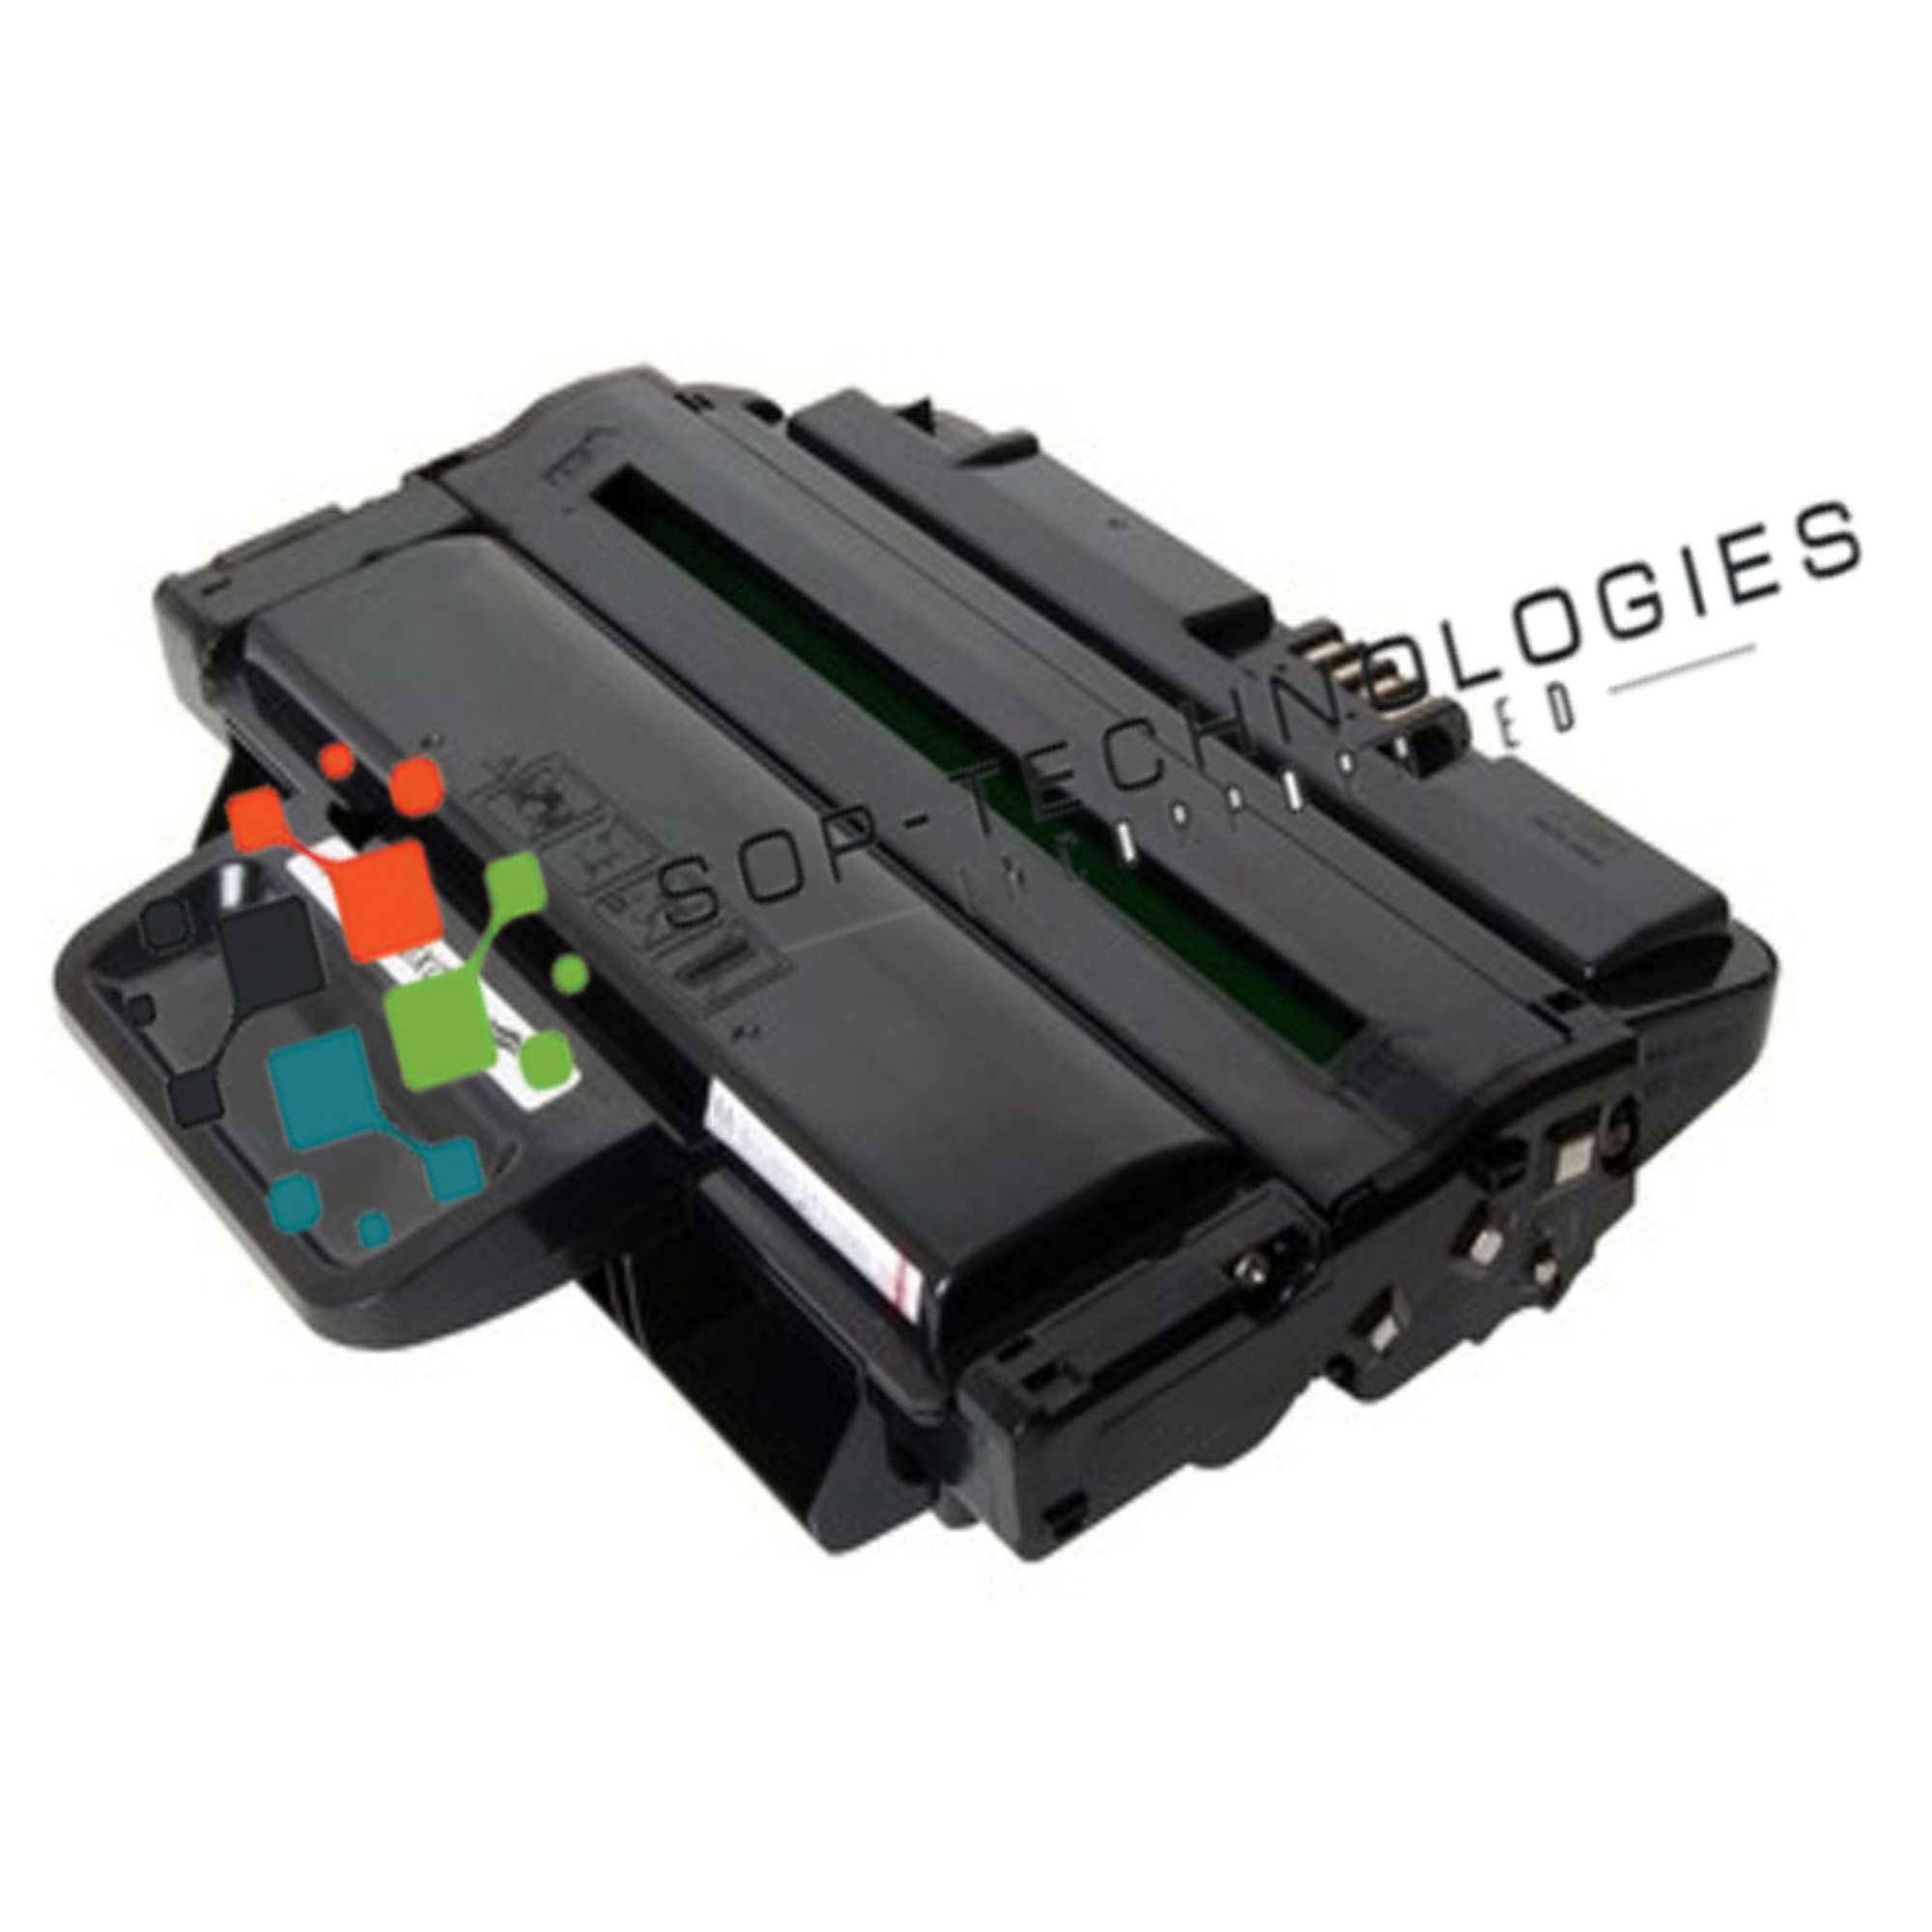 Xerox 106R01486 High Yield Black laser toner for WorkCentre 3210 3220 NON-OEM - SOP-TECHNOLOGIES, INC.